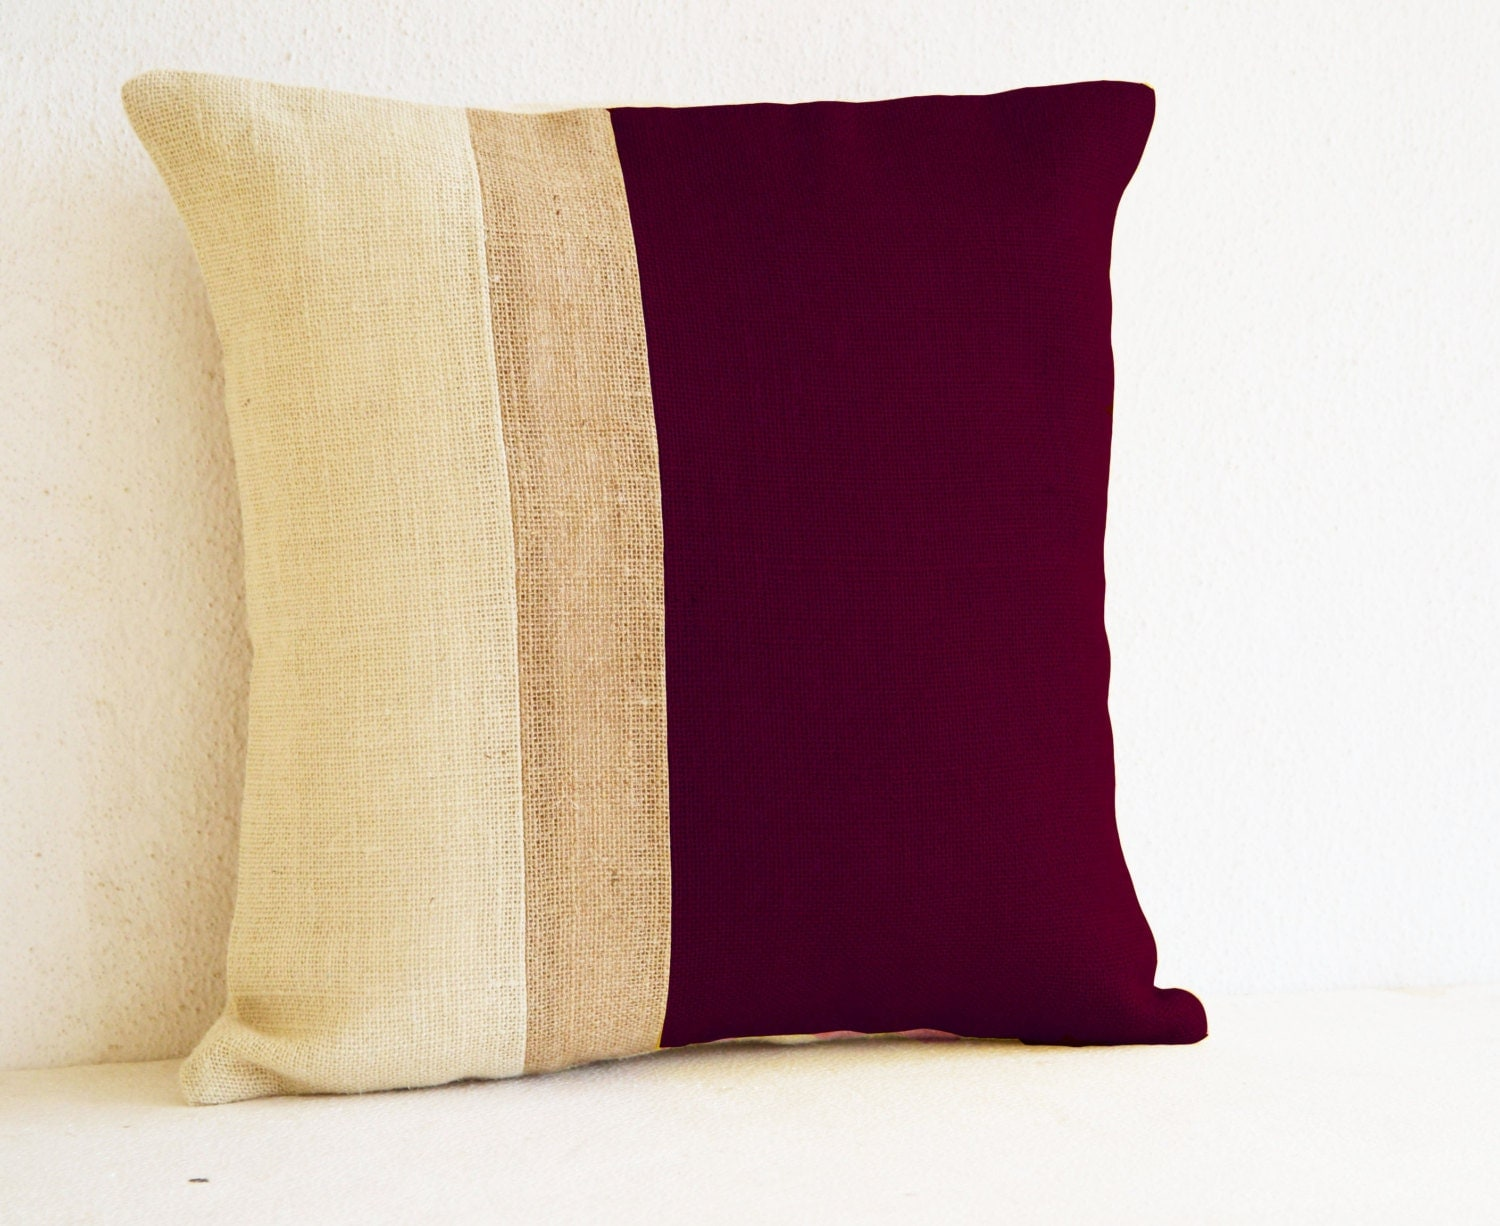 Burgundy Pillow Burlap Pillow Color Block Maroon Ivory